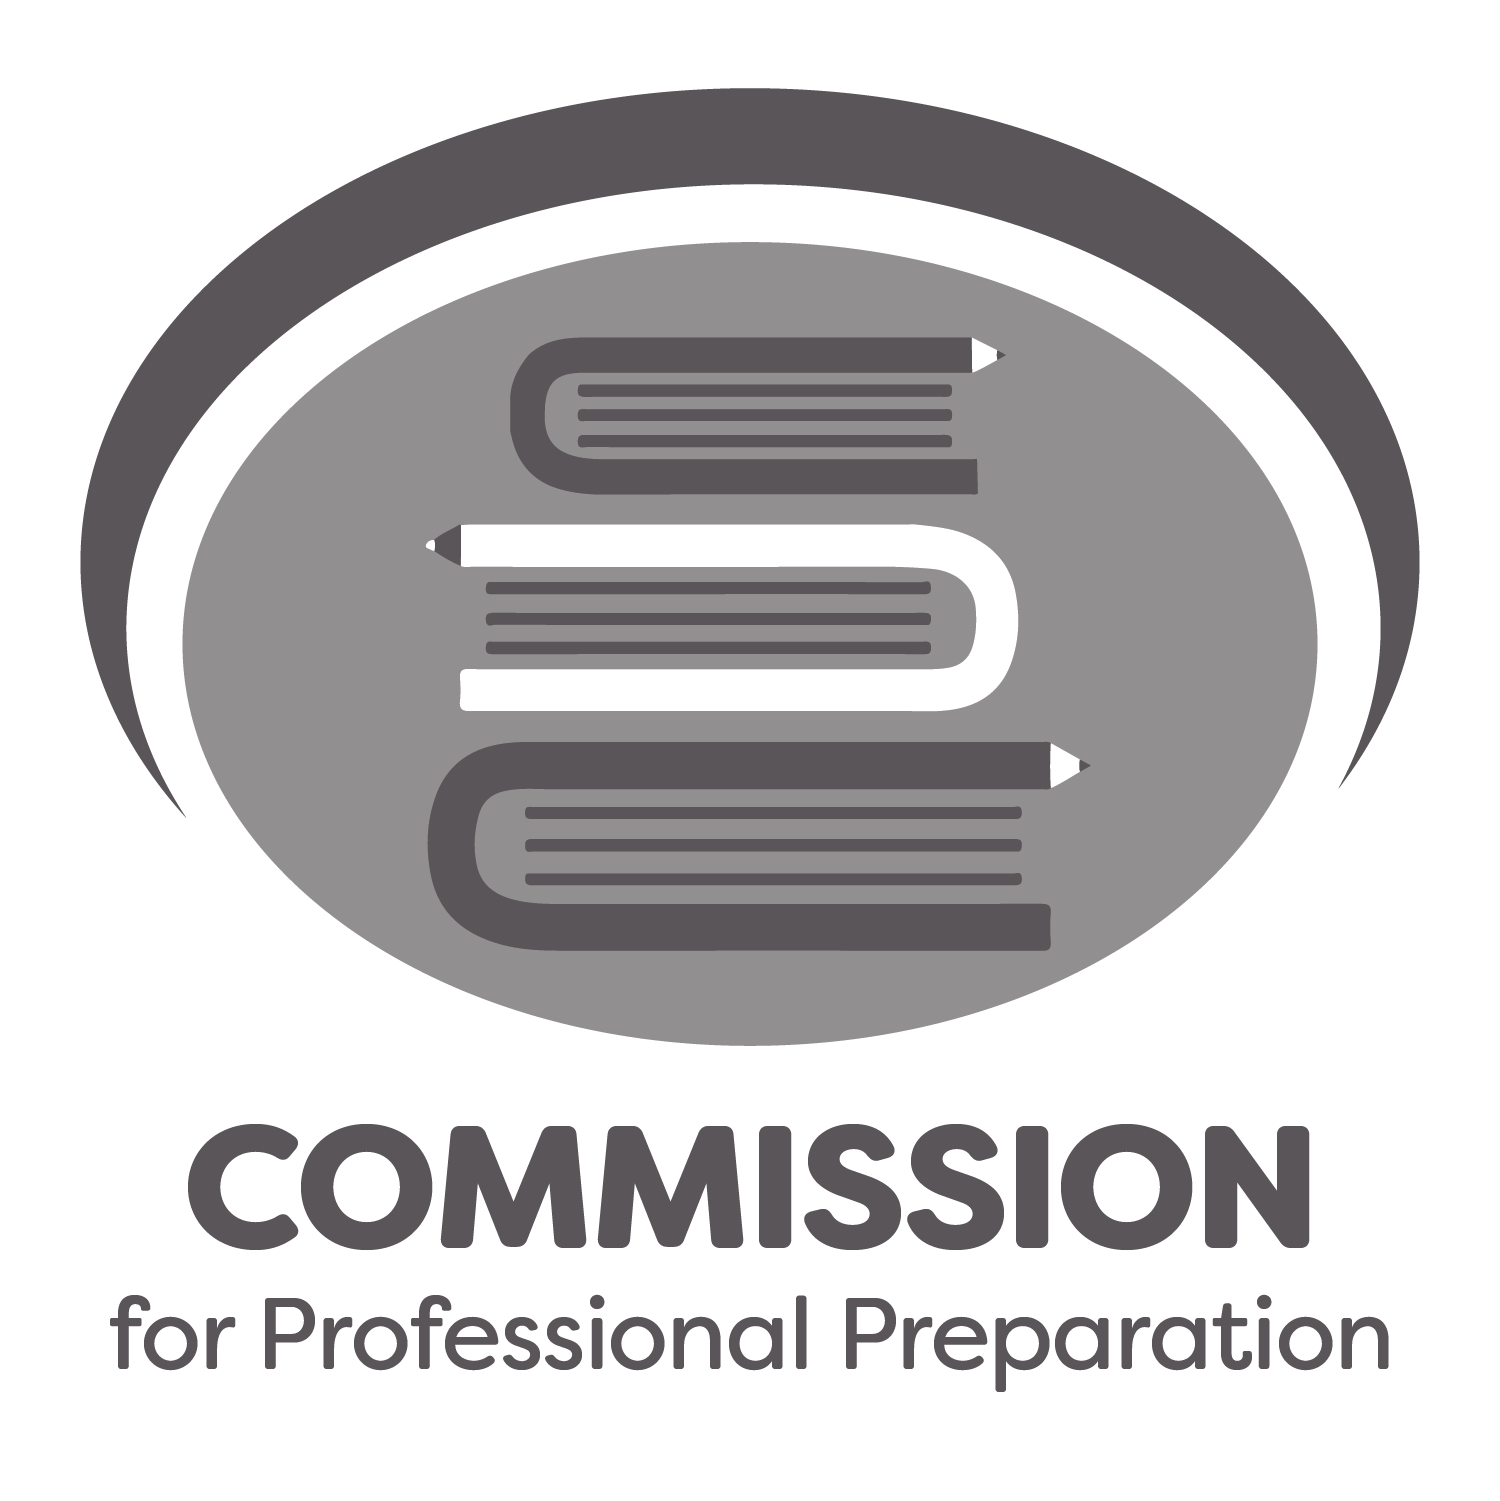 commission for professional preparation logo. a stack of books with pencils on the end